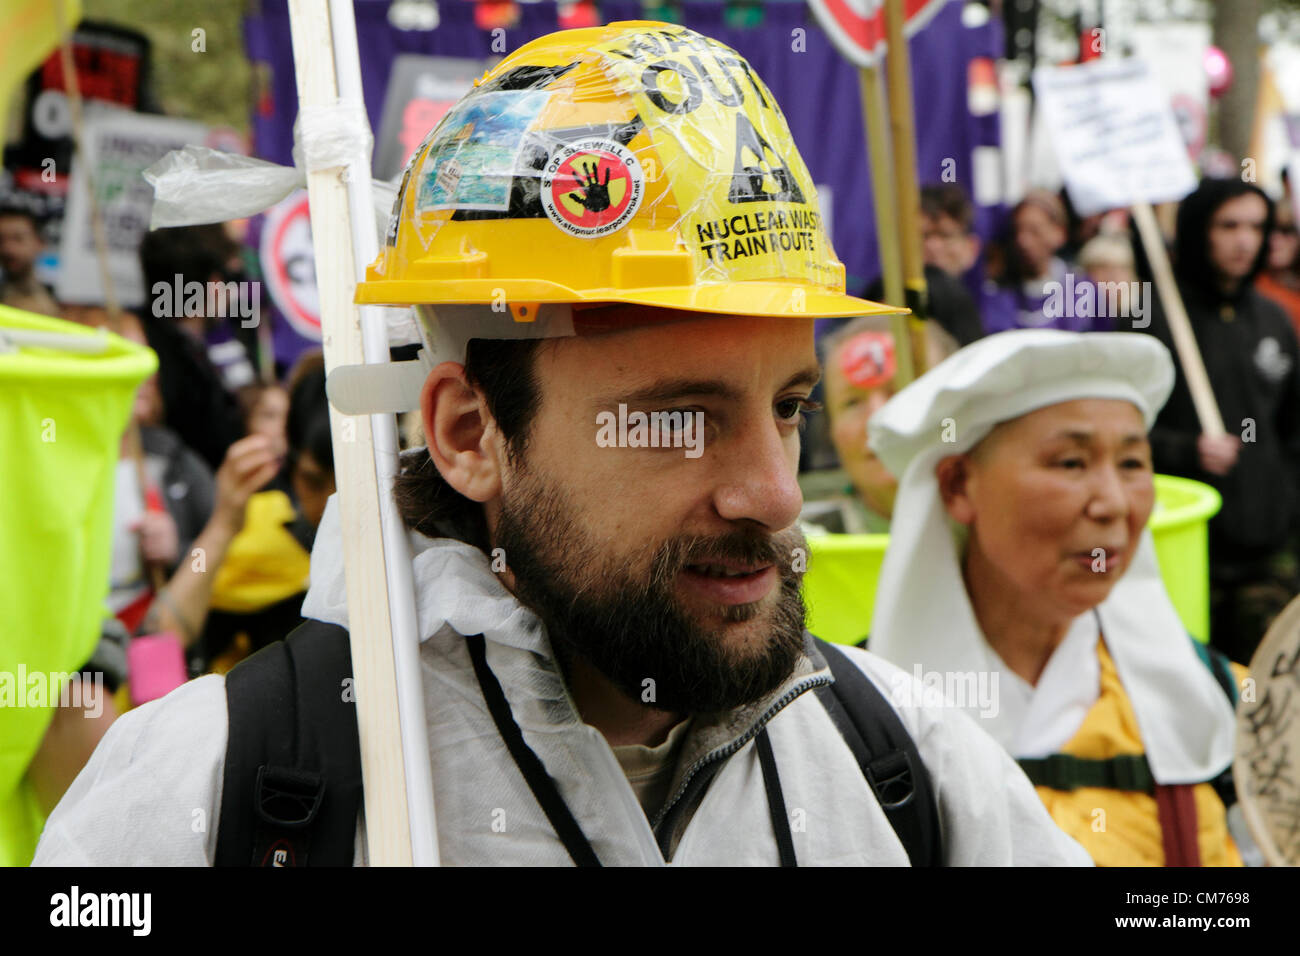 Anti-nuclear energy protestors take part in the TUC anti-austerity march London, England, UK.  Saturday, 20 October - Stock Image